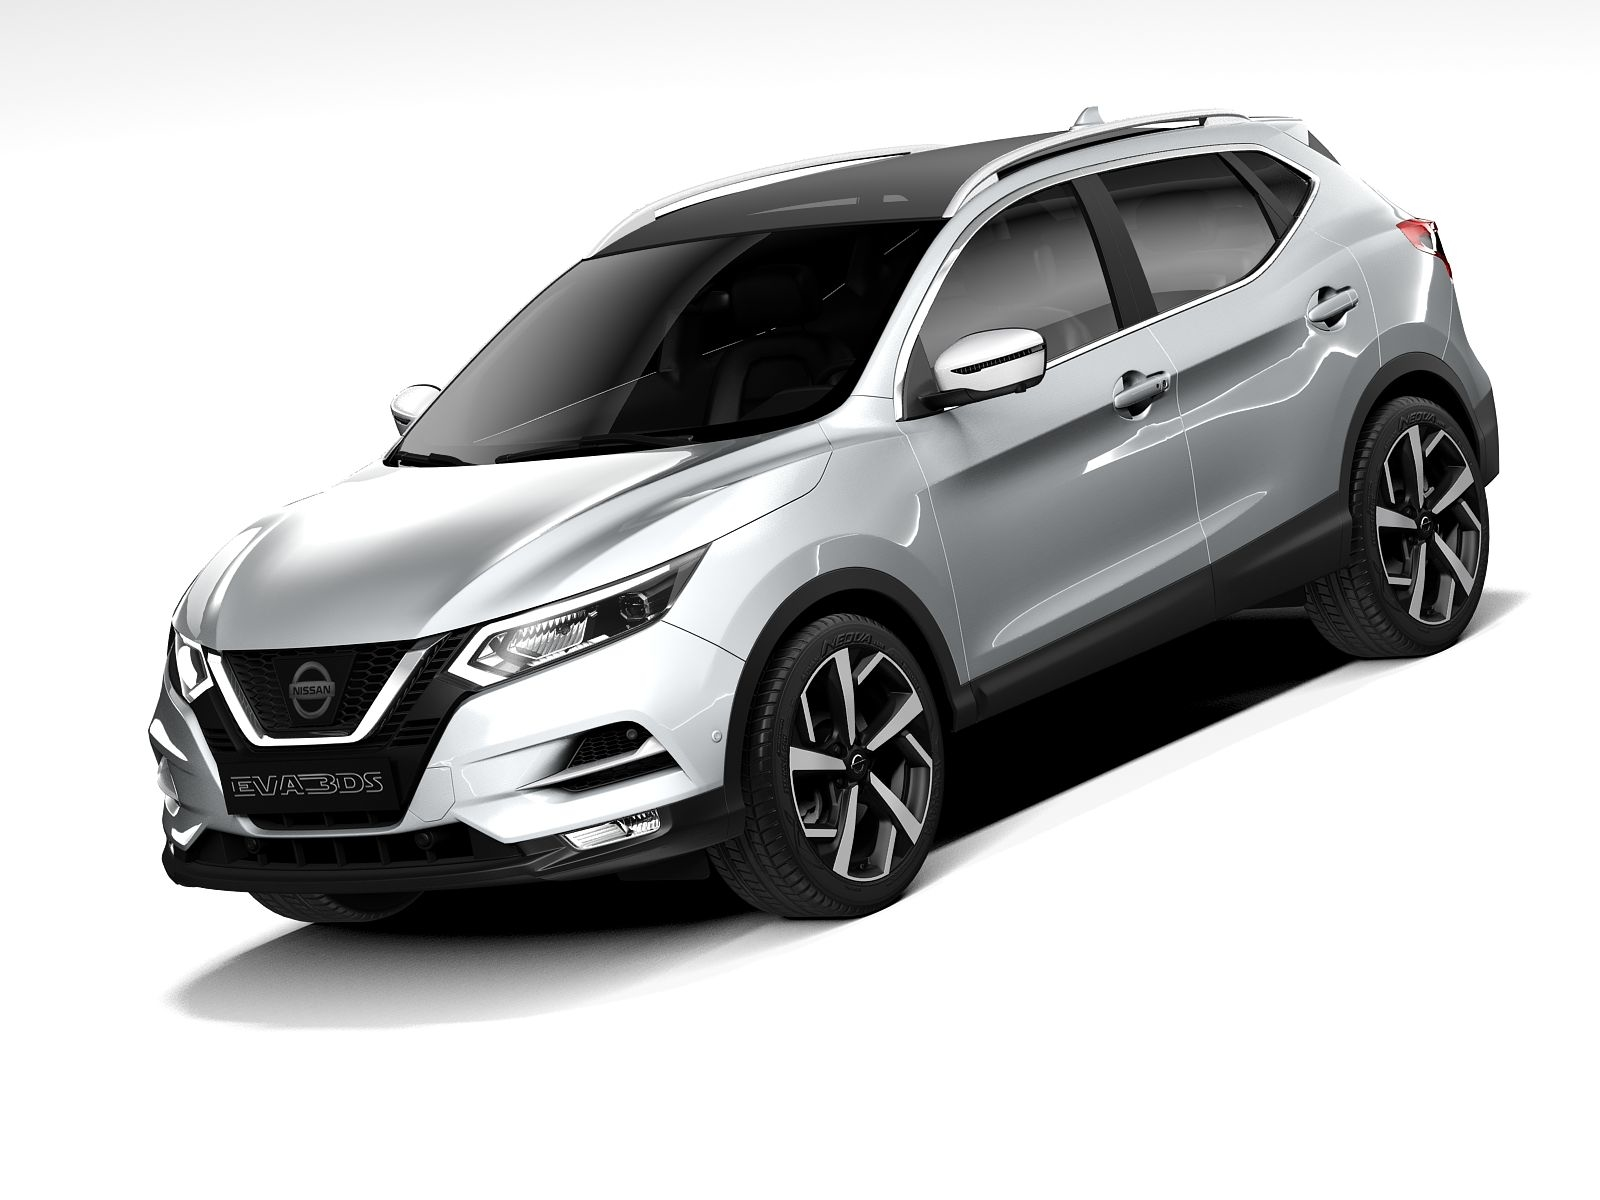 nissan qashqai 2021 new model  car wallpaper